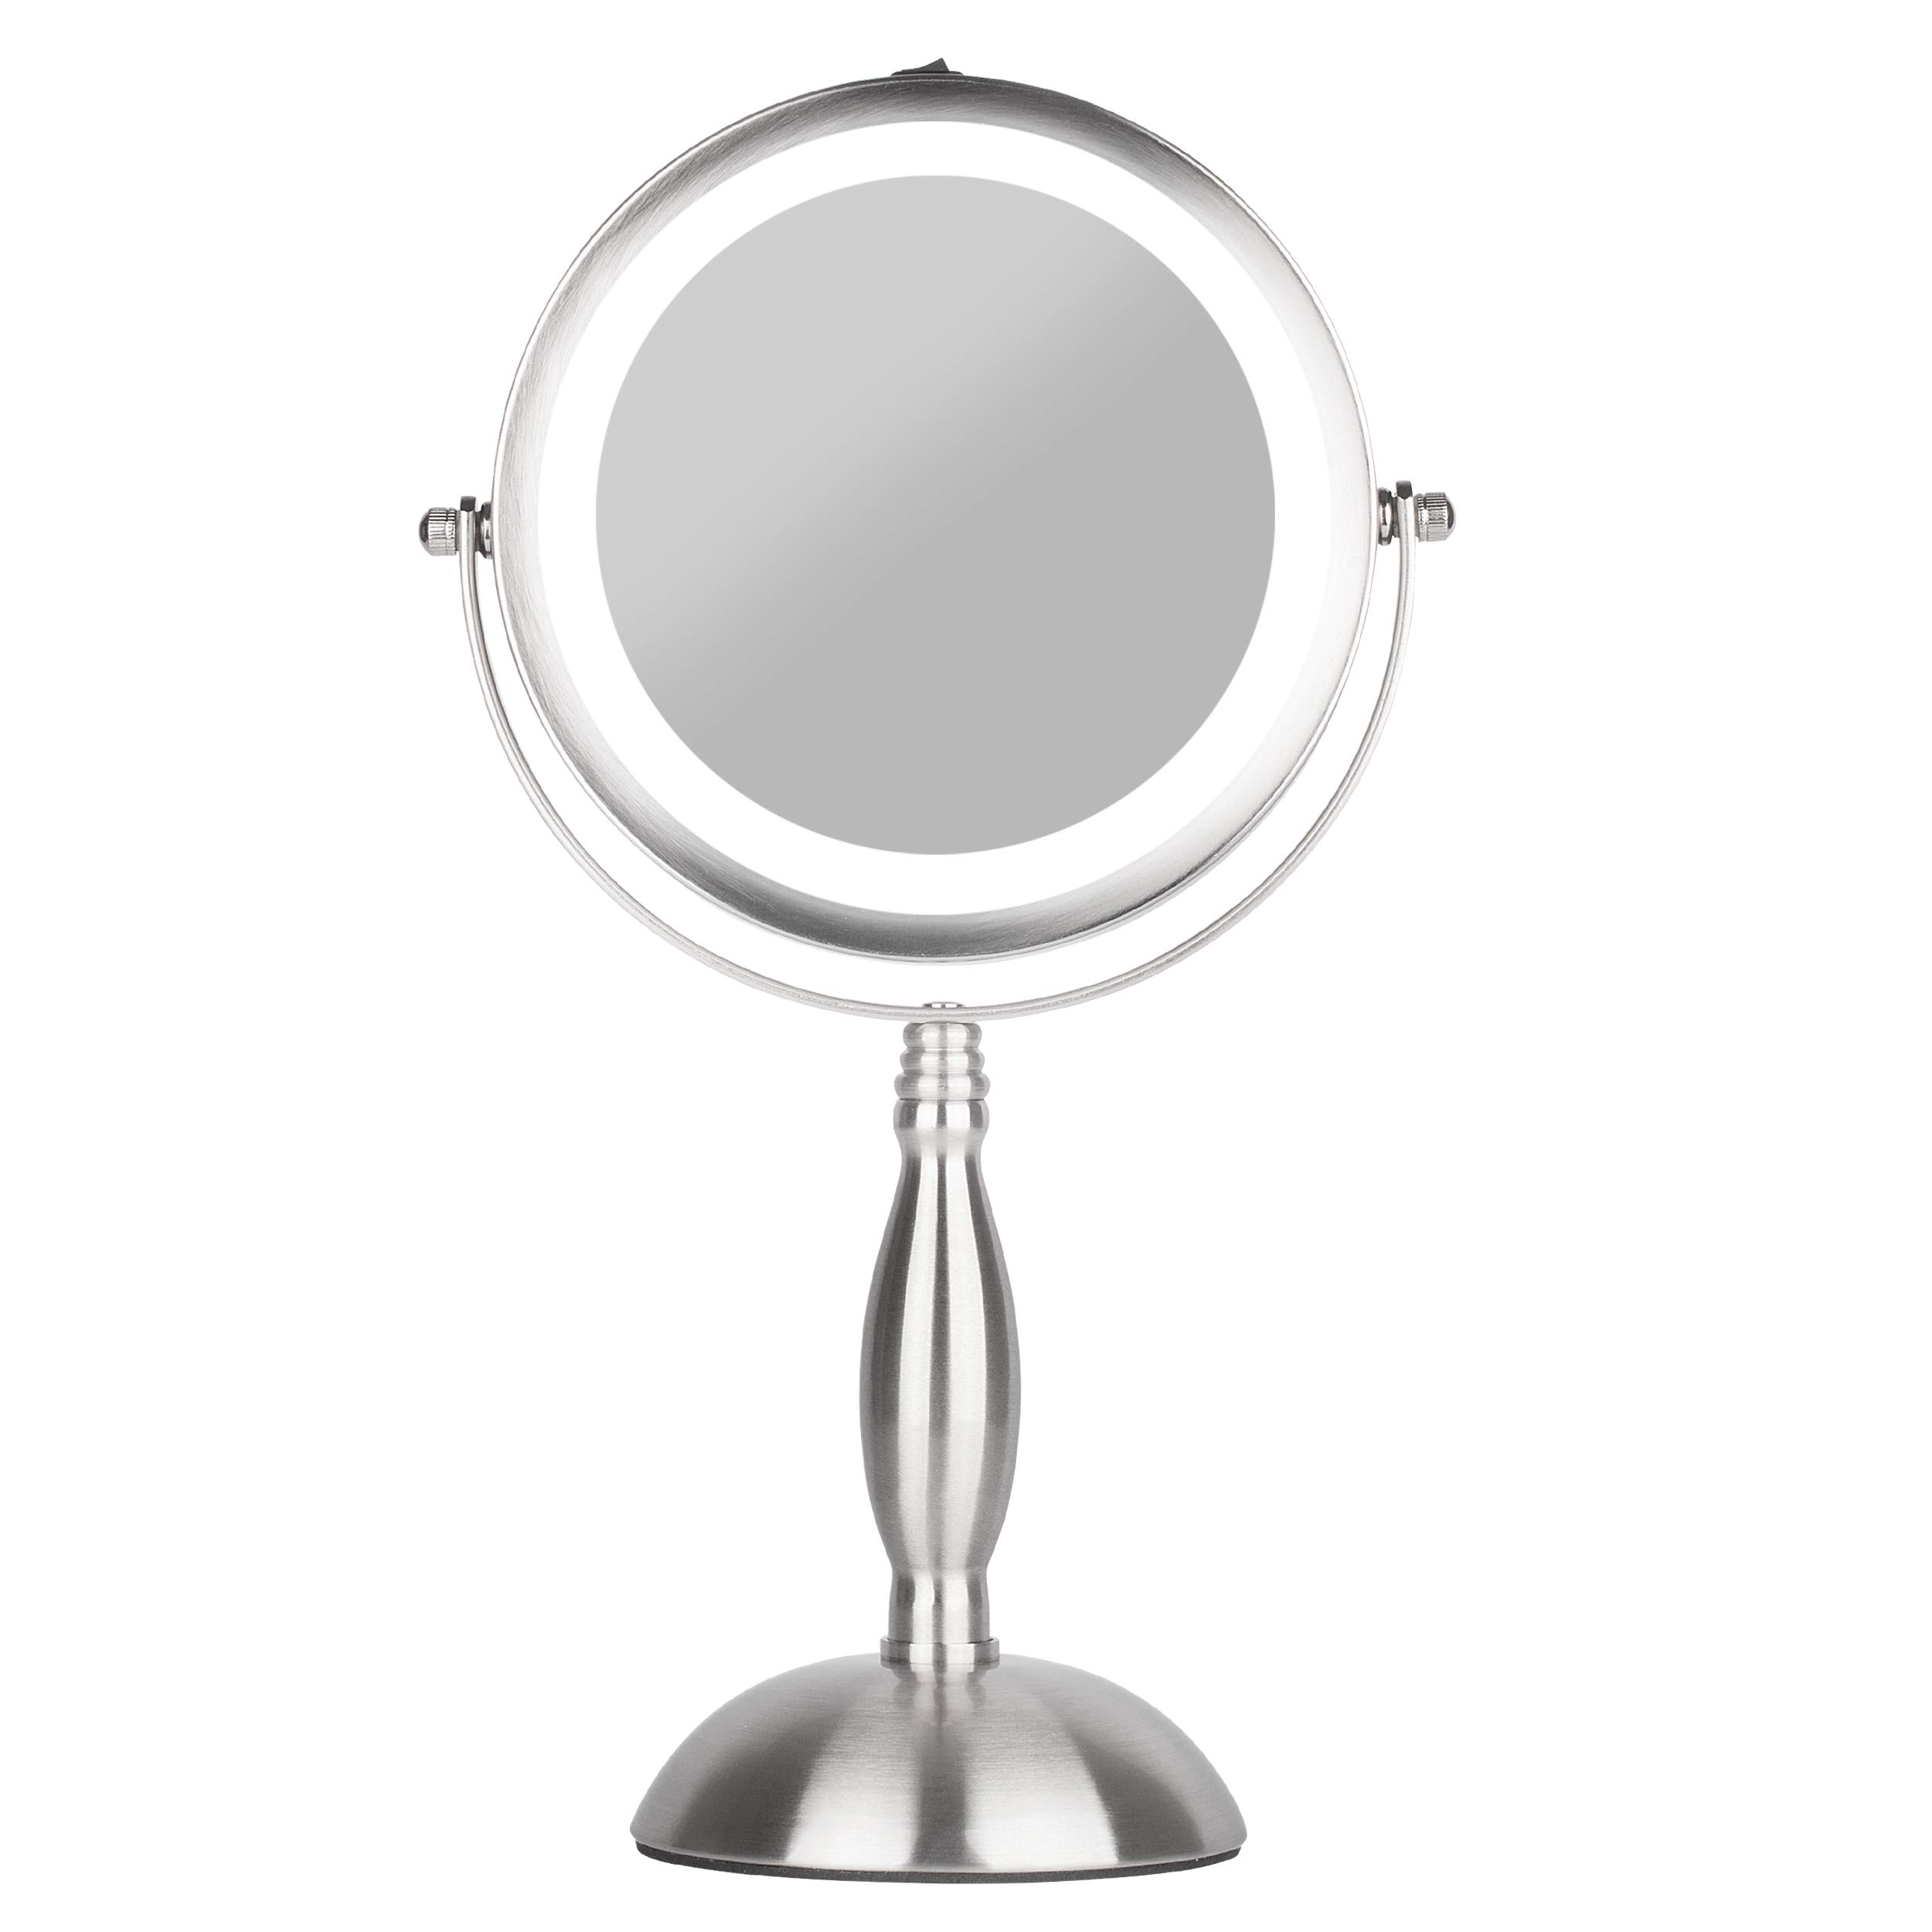 S.H.E. Makeup Mirror - Lighted Vanity Mirror - Natural White 18 Led Bulbs - Free-standing cosmetic mirror, Cordless, Battery-powered - Double sided x1/x7 magnification - 360 rotation round face mirror